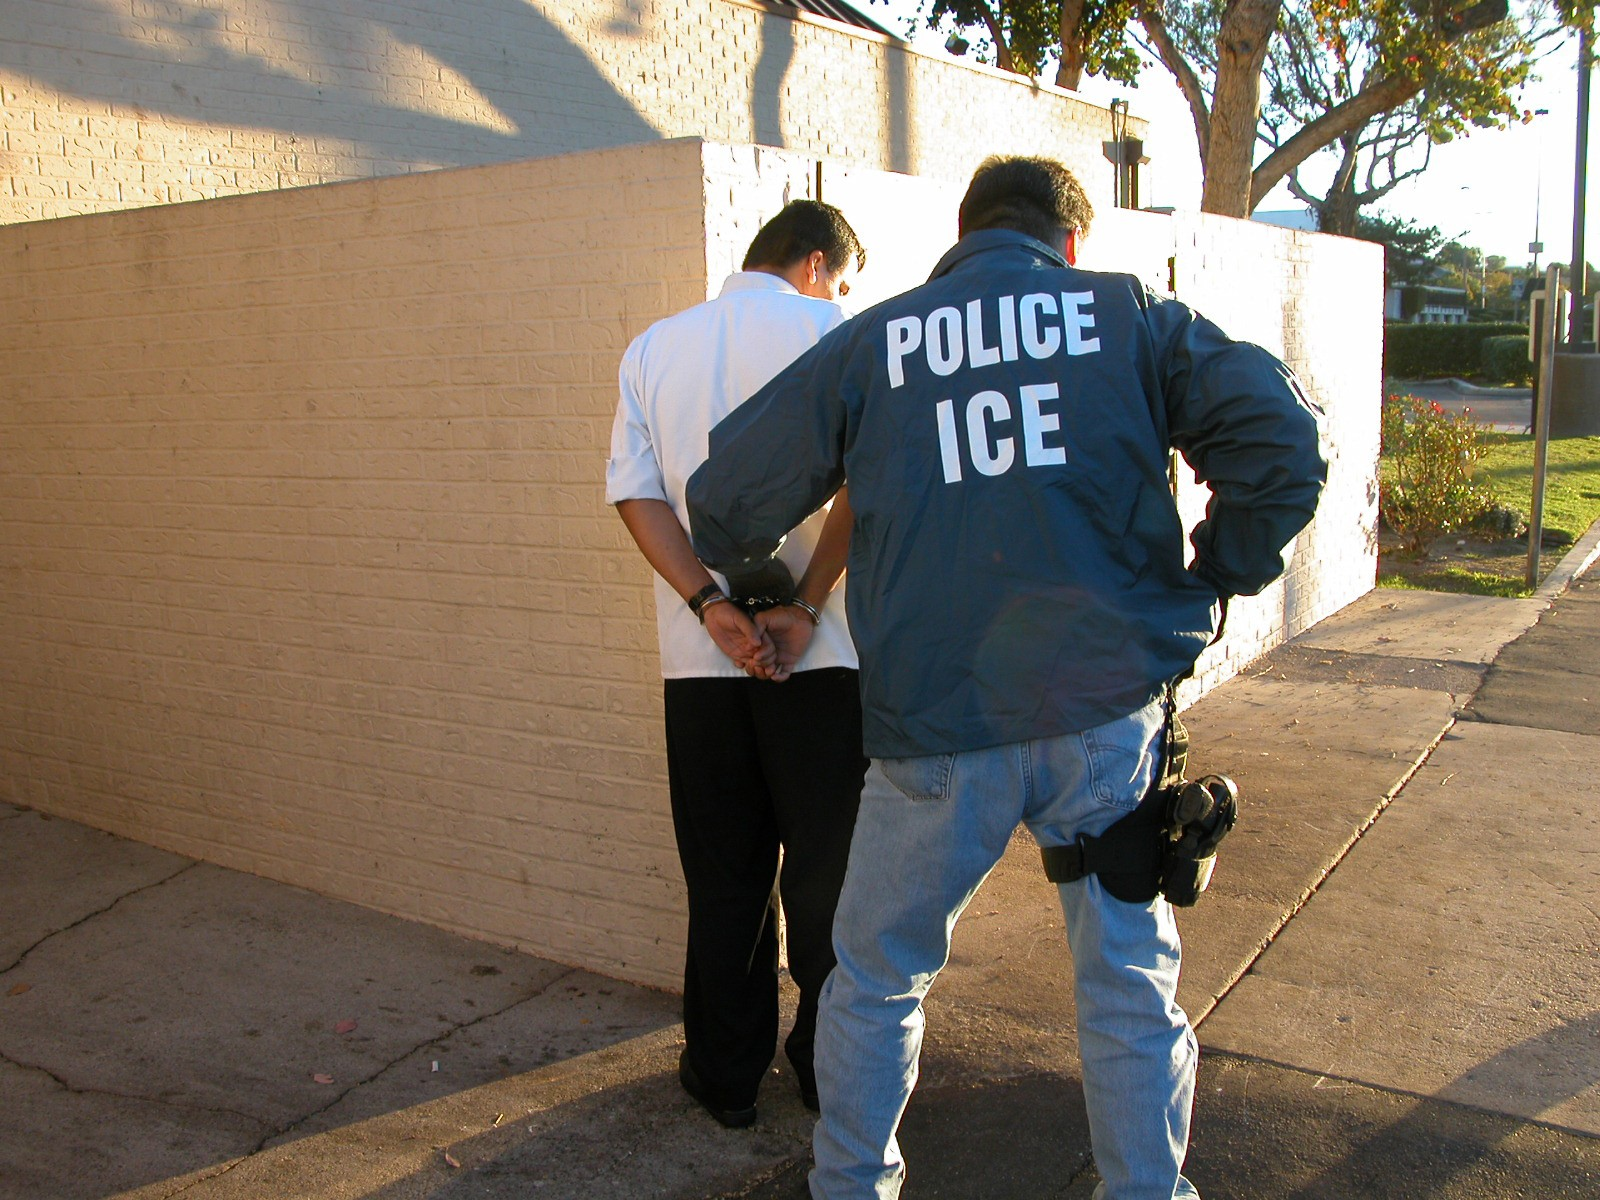 Democrat obstructionism is working: ICE agents fail to make ANY arrests in NYC during early deportation operations